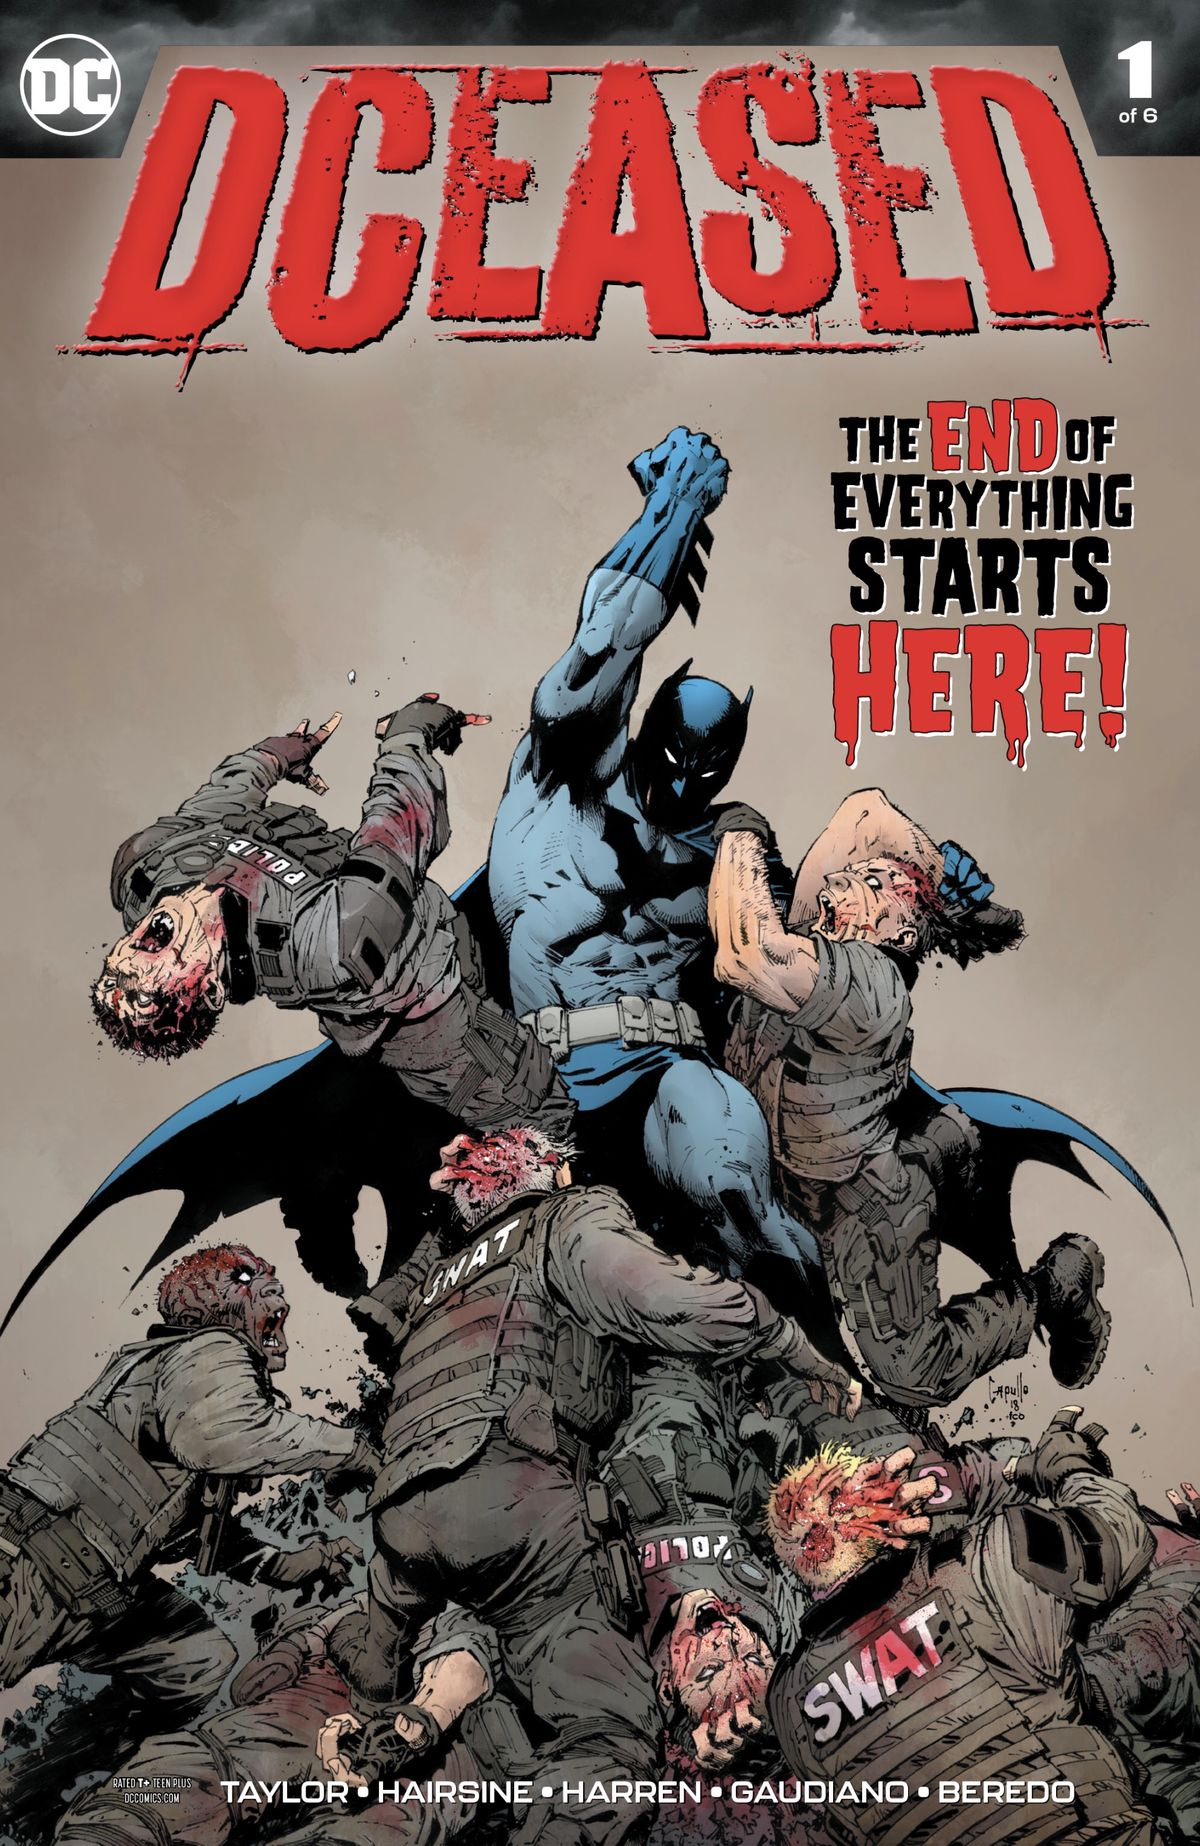 Batman battles against a zombie SWAT team on the cover of DCeased #1, DC Comics (2019).